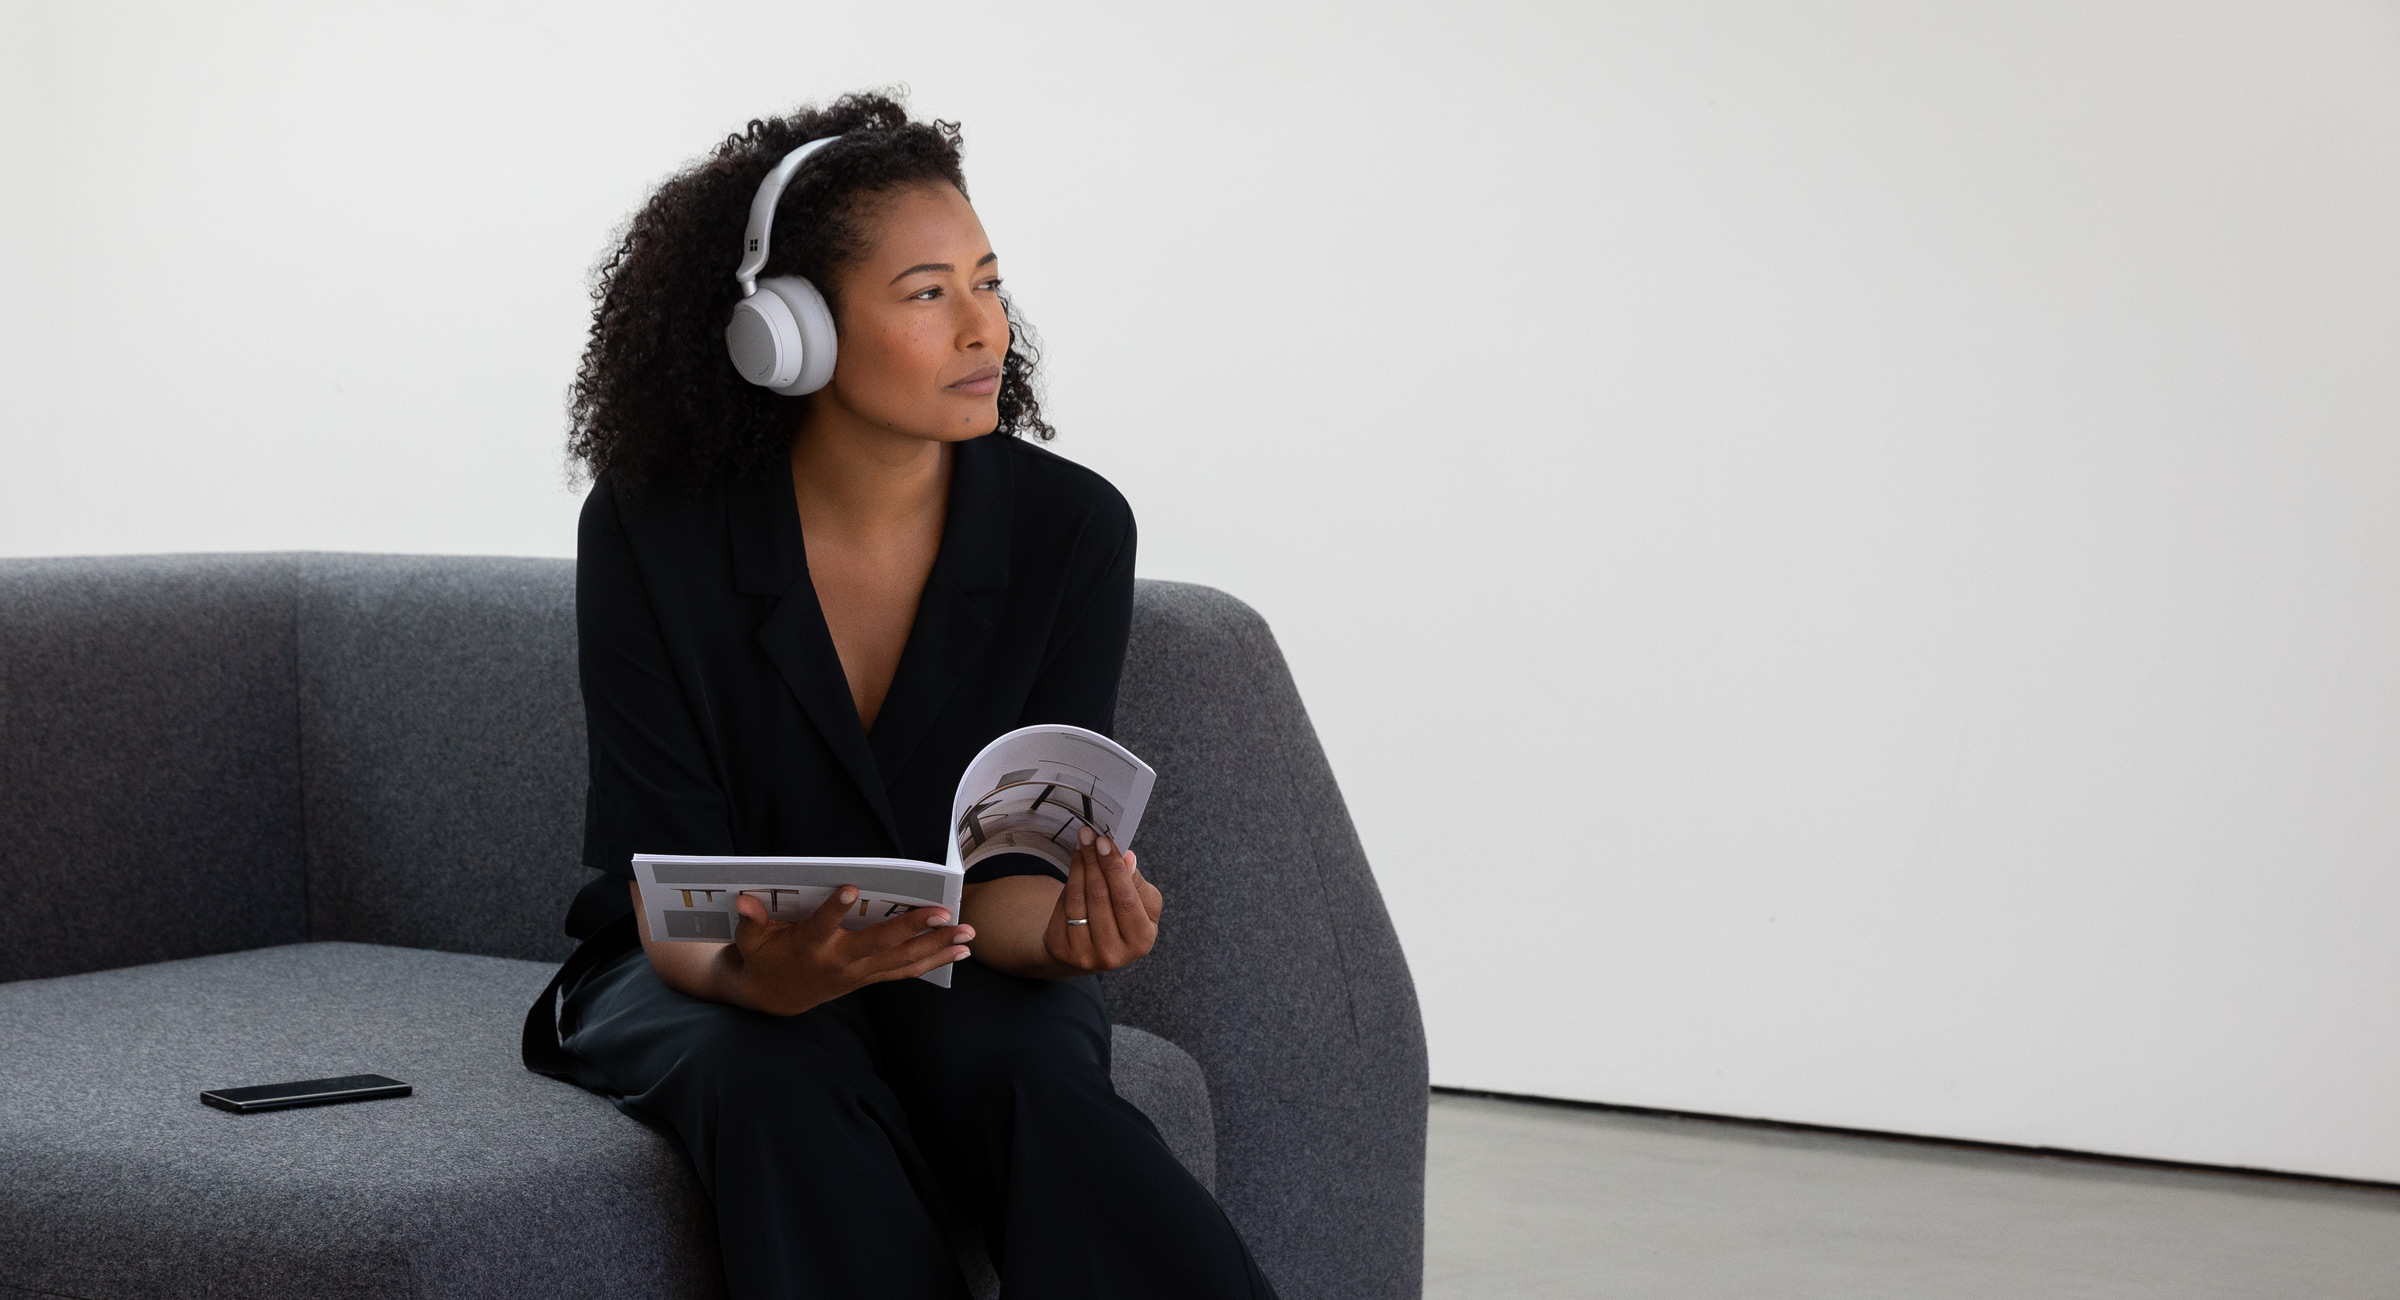 A woman sitting on a couch listening on Surface Headphones